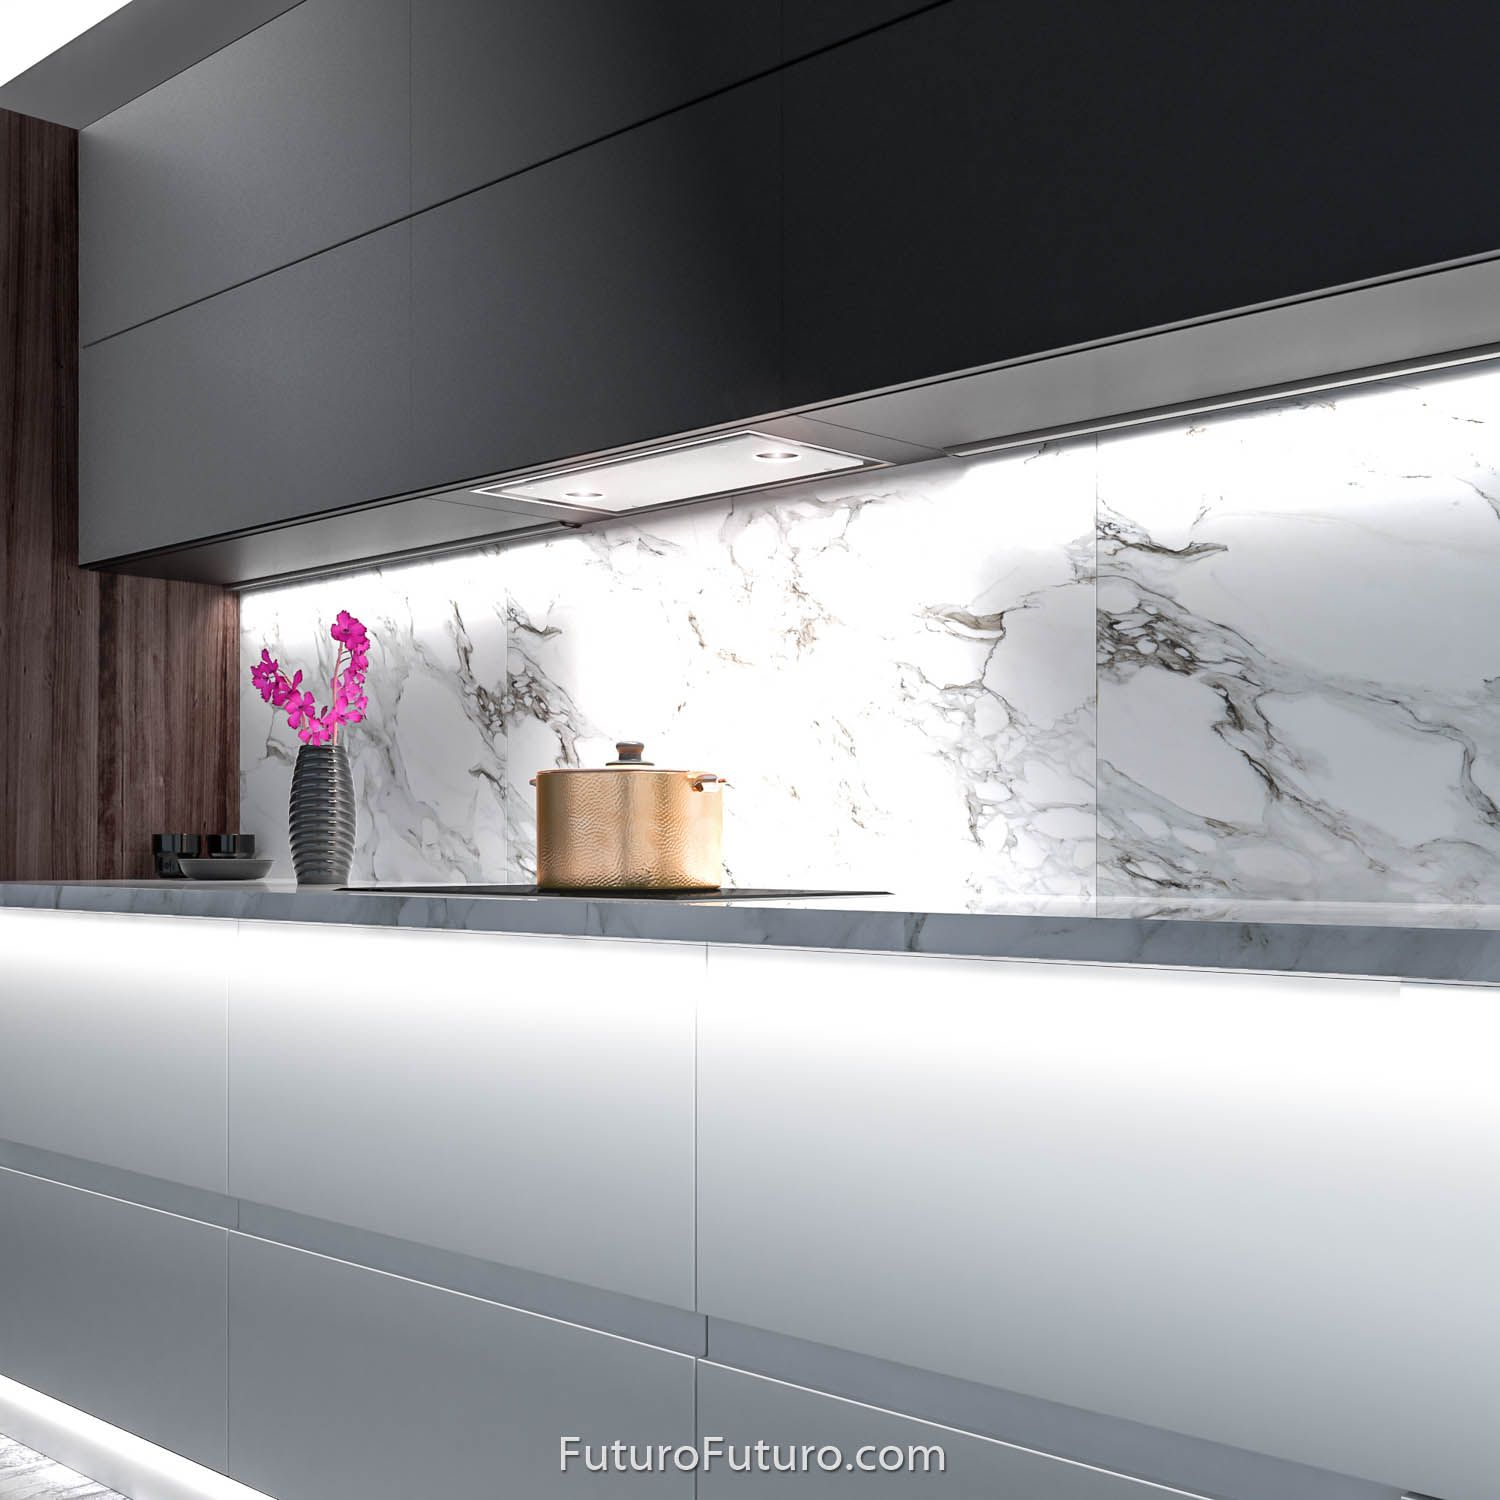 24 Raccolta Insert Designed For Kitchens Where A Minimal Clean Look Is Desired The Raccolta Seri Minimalist Kitchen Design Range Hood Kitchen Ventilation